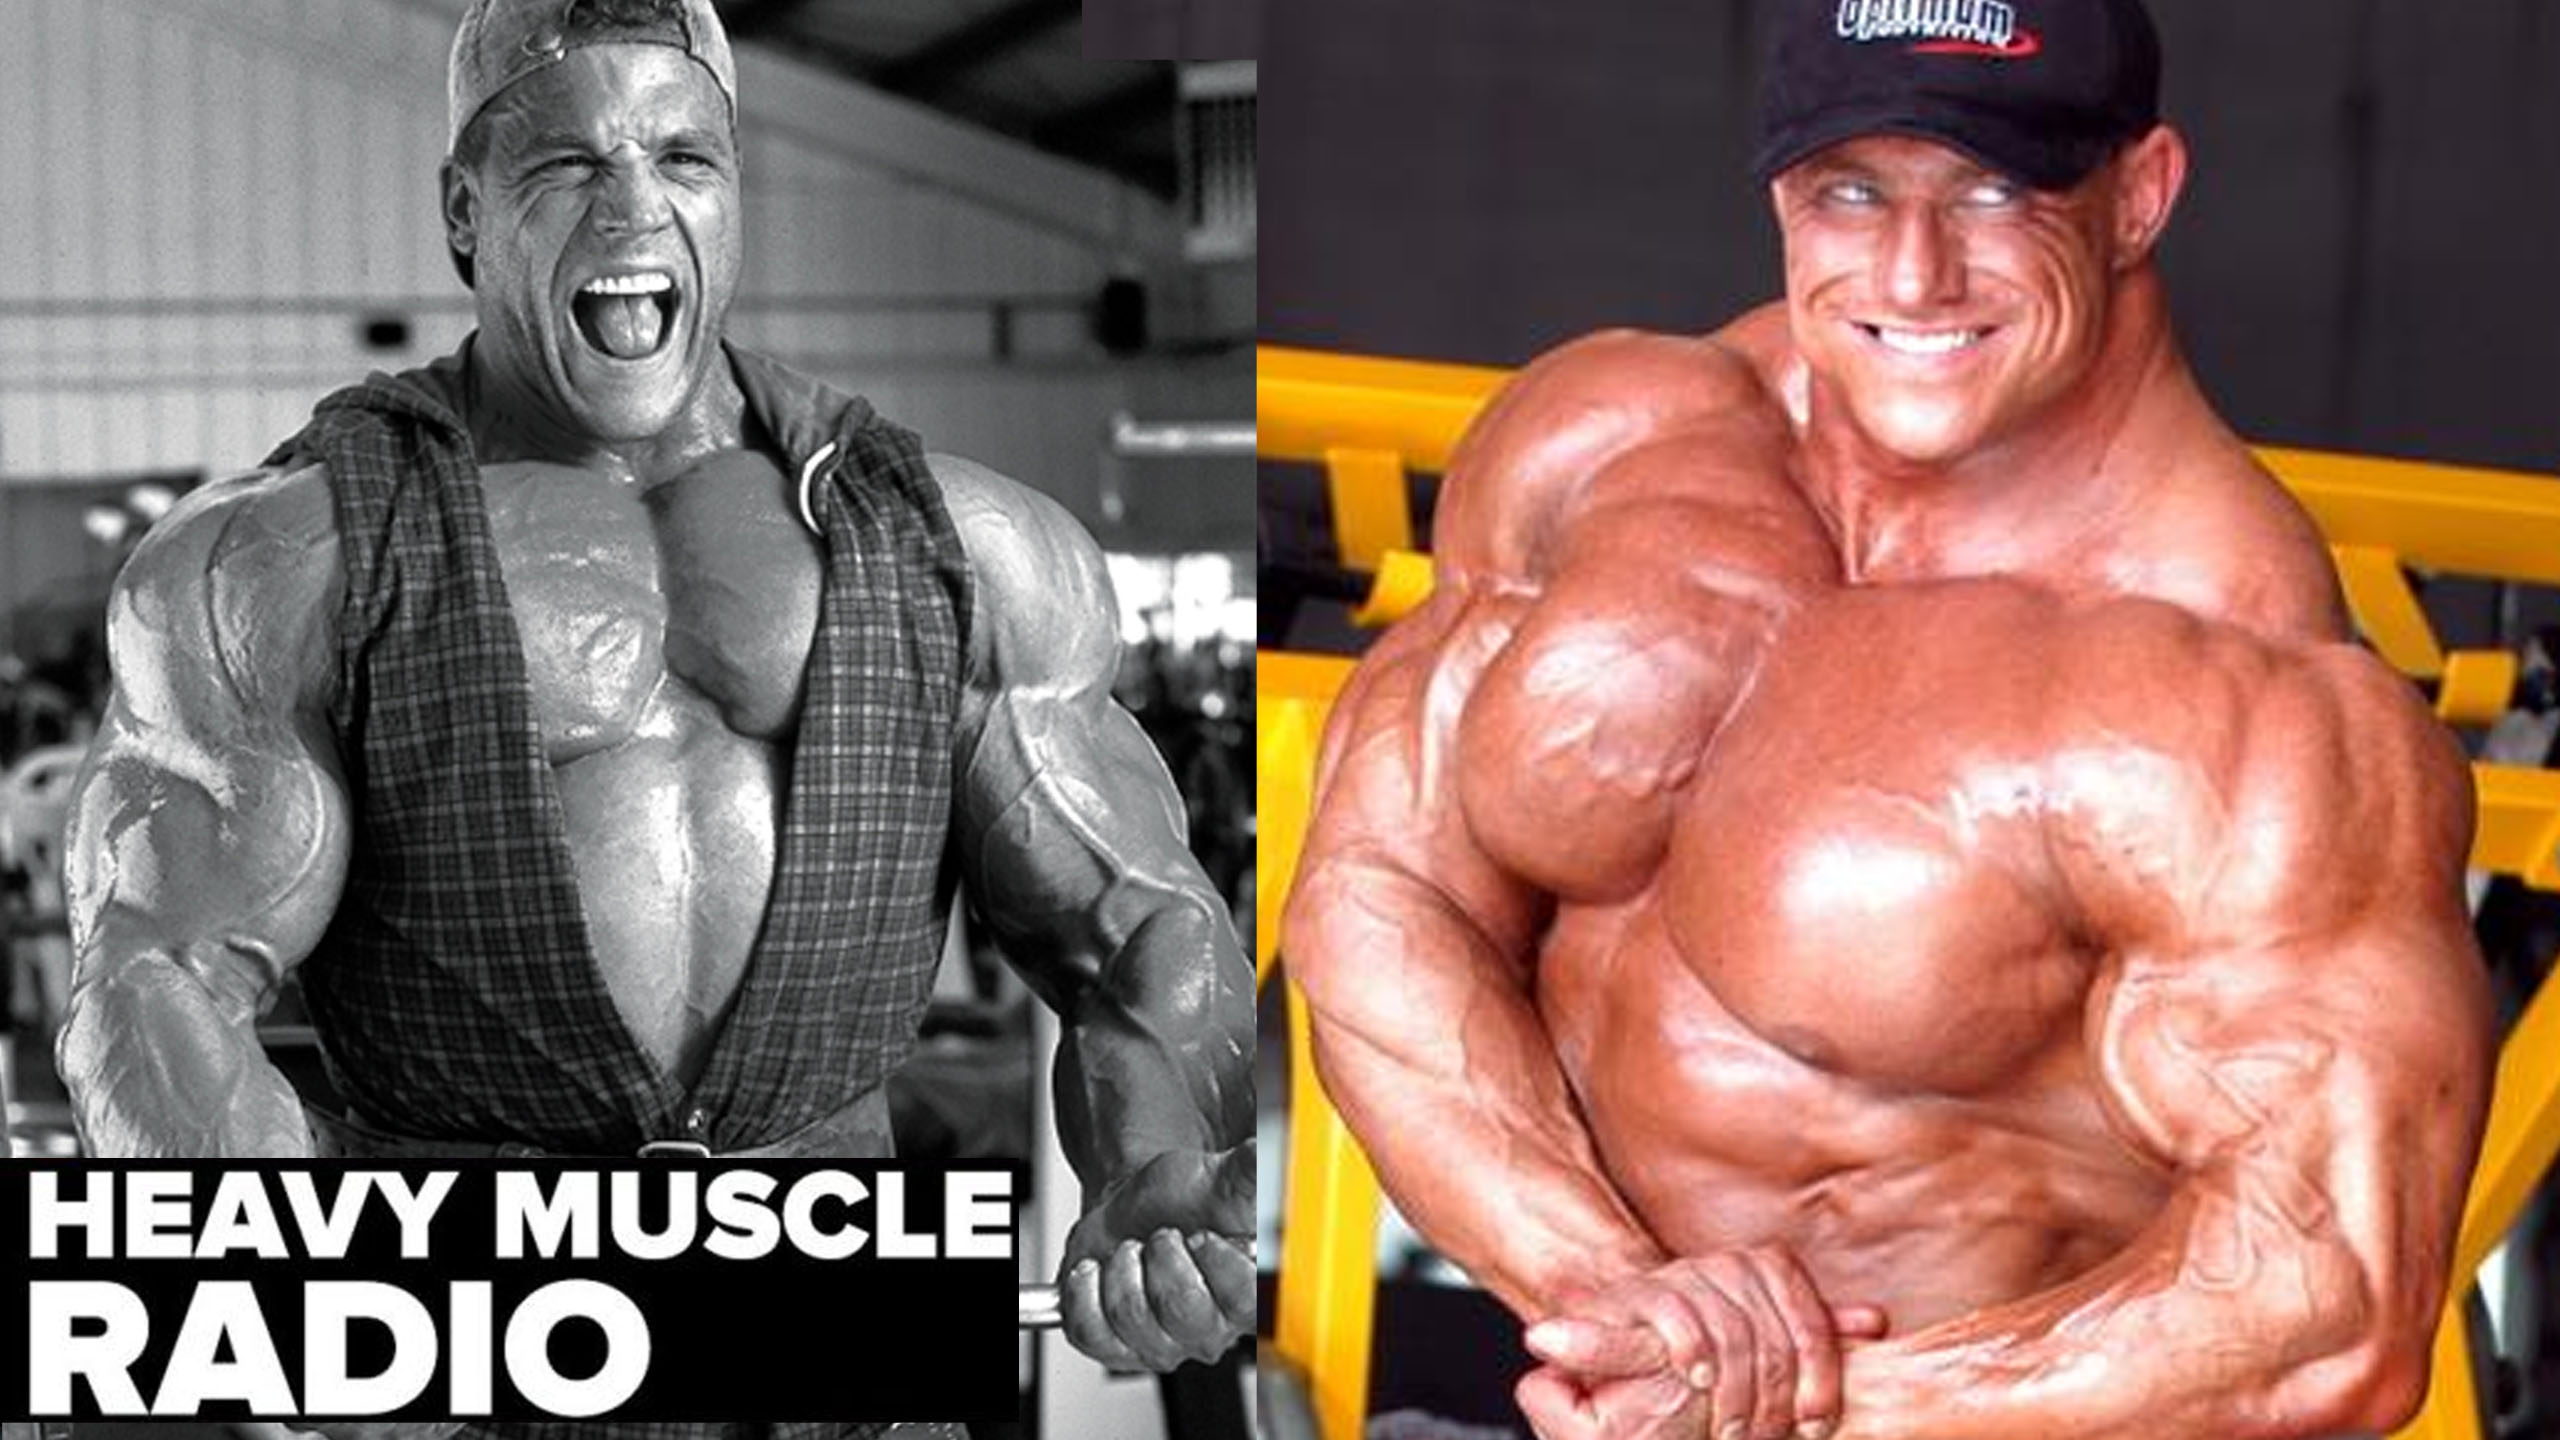 greg kovacs heavy muscle radio